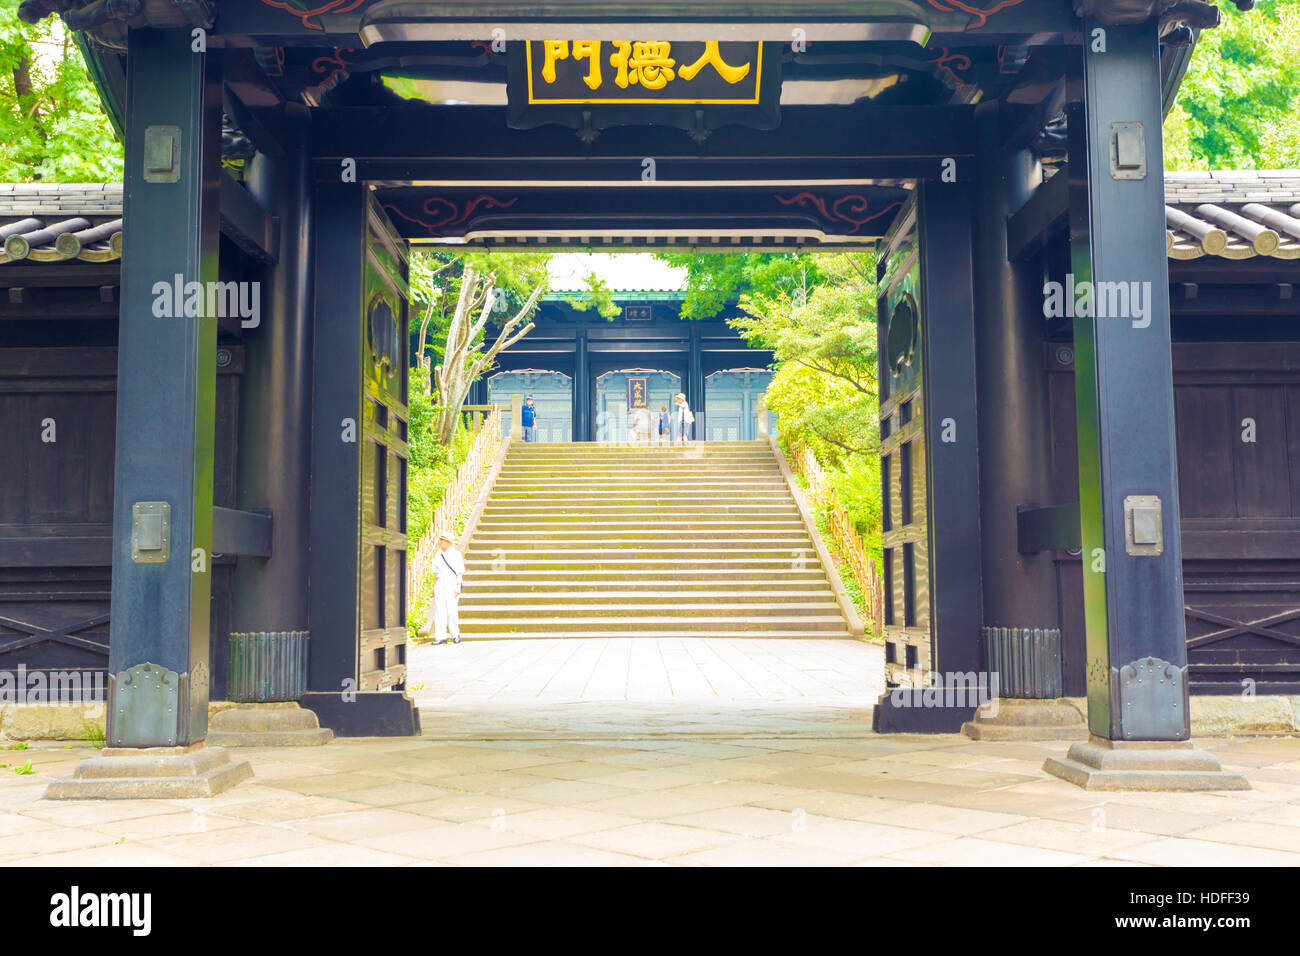 Stairs seen through open entrance doorway to historic Yushima Seido, a Confucian temple in Tokyo, Japan. Horizontal - Stock Image